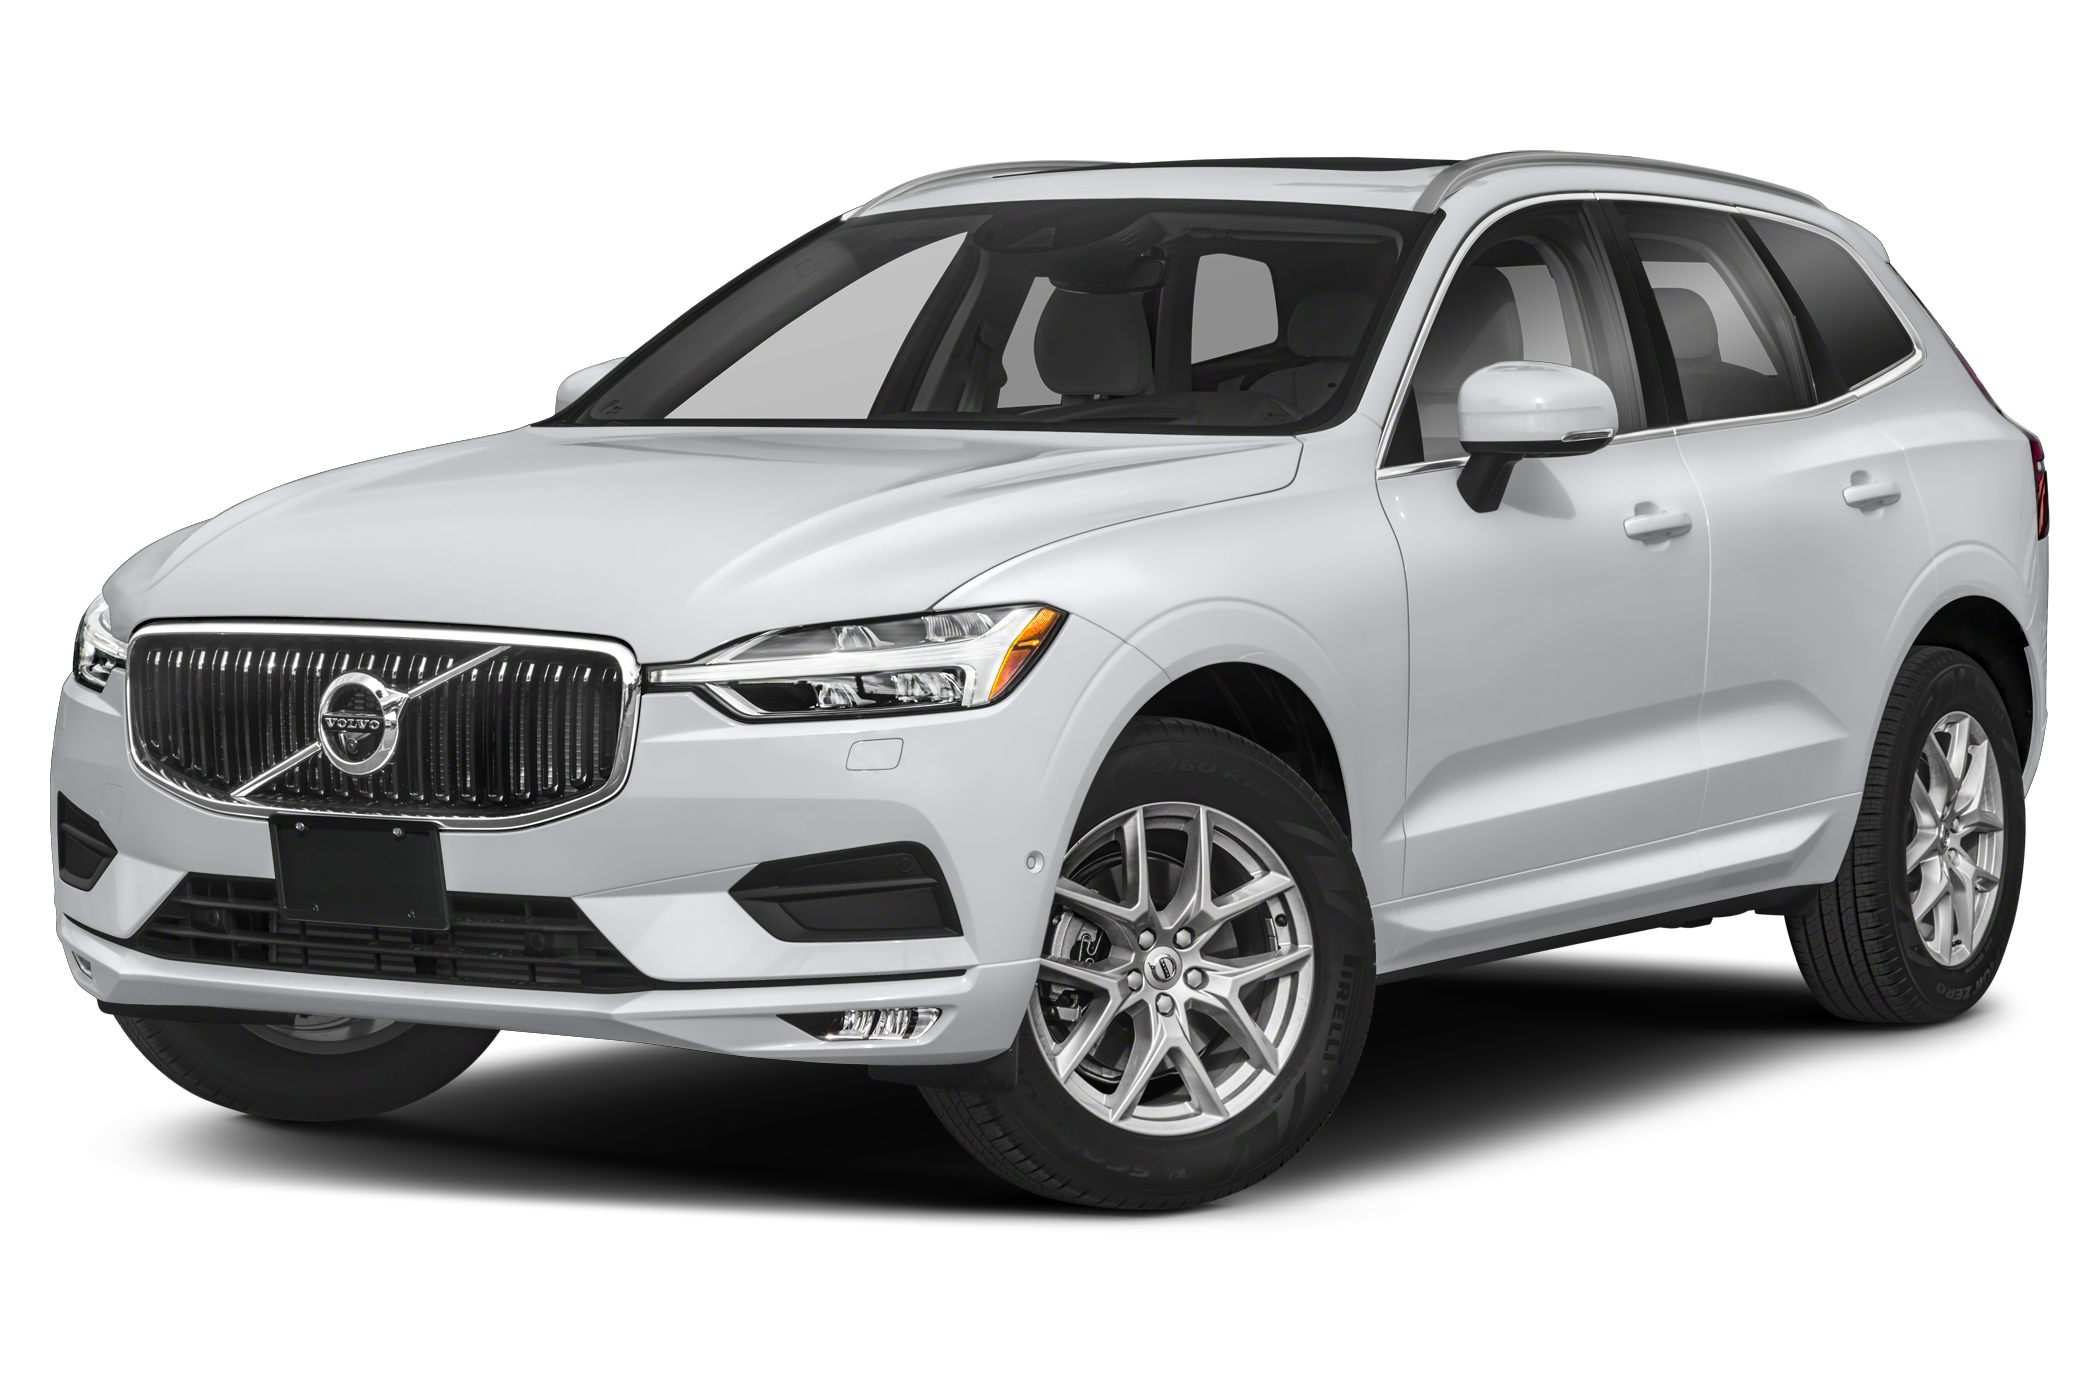 84 New Volvo Xc60 Model Year 2020 Specs and Review by Volvo Xc60 Model Year 2020